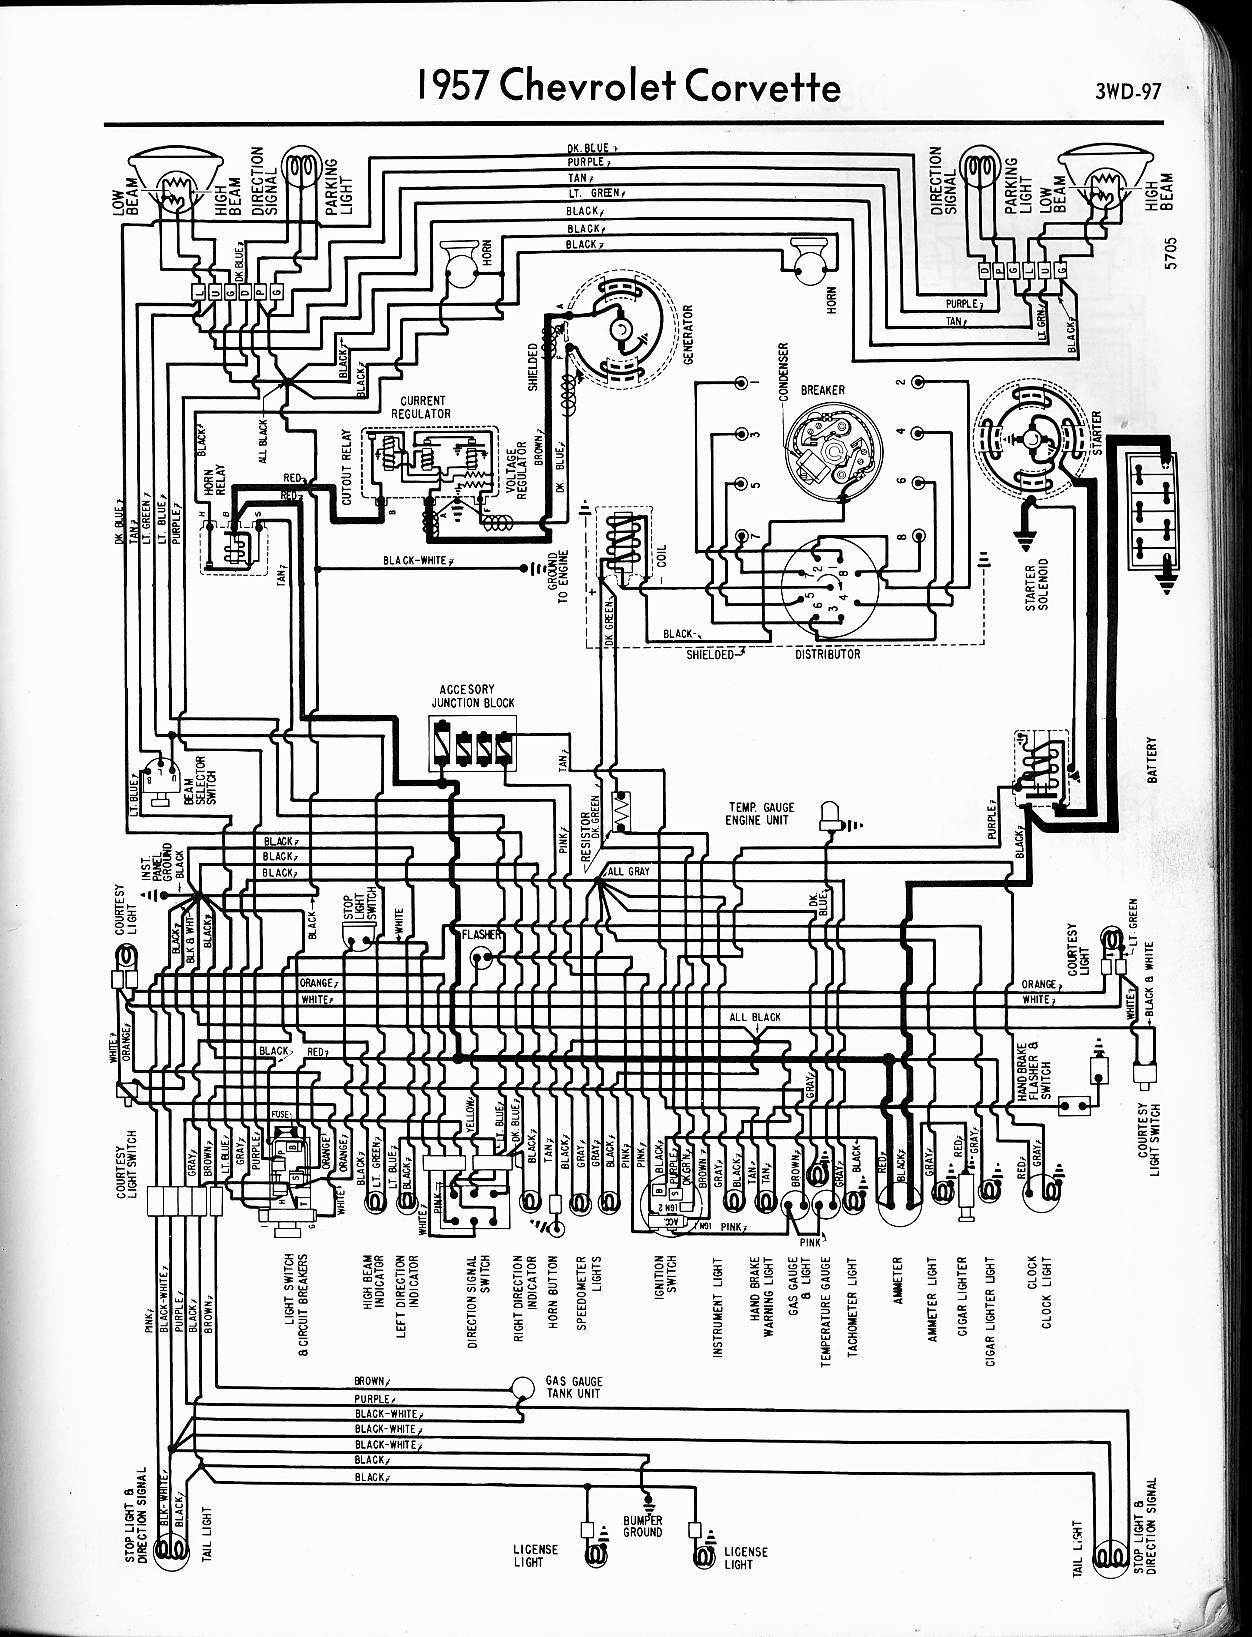 1960 Chevrolet Wiring Diagram Library Impala 1957 Corvette